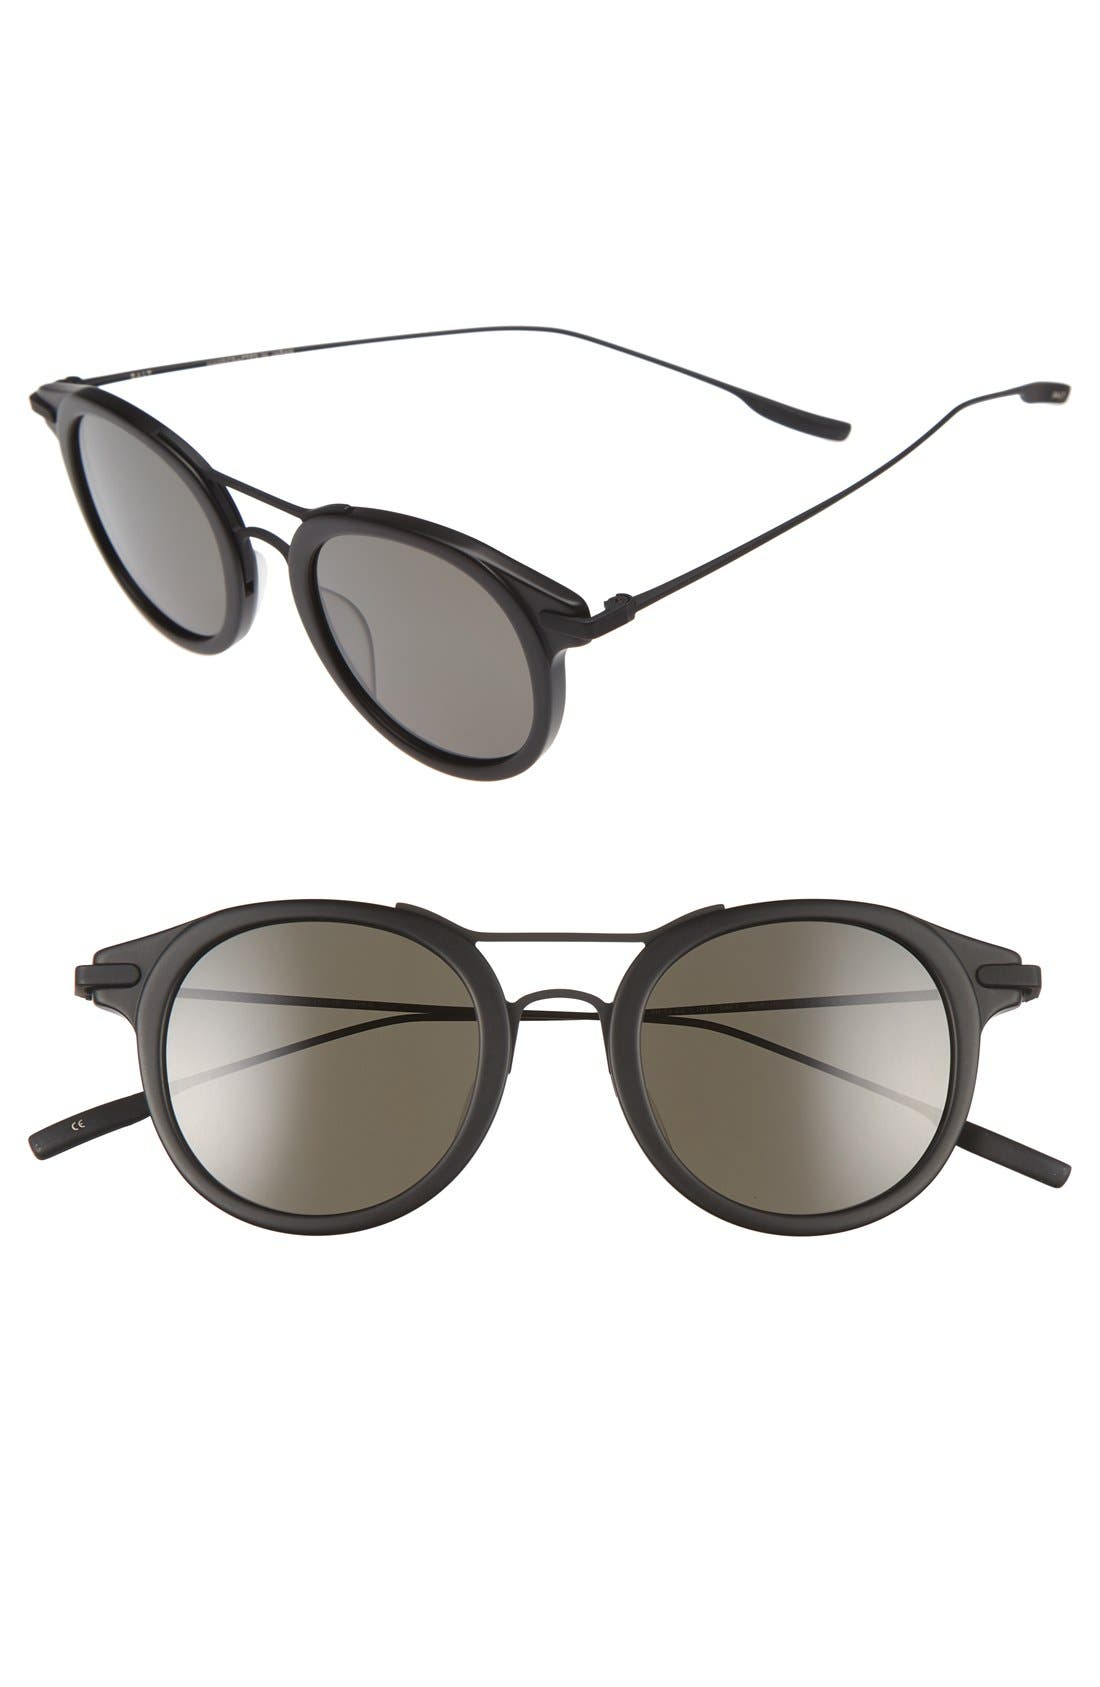 Taft 46mm Polarized Round Sunglasses,                         Main,                         color, MATTE BLACK/ BLACK SAND